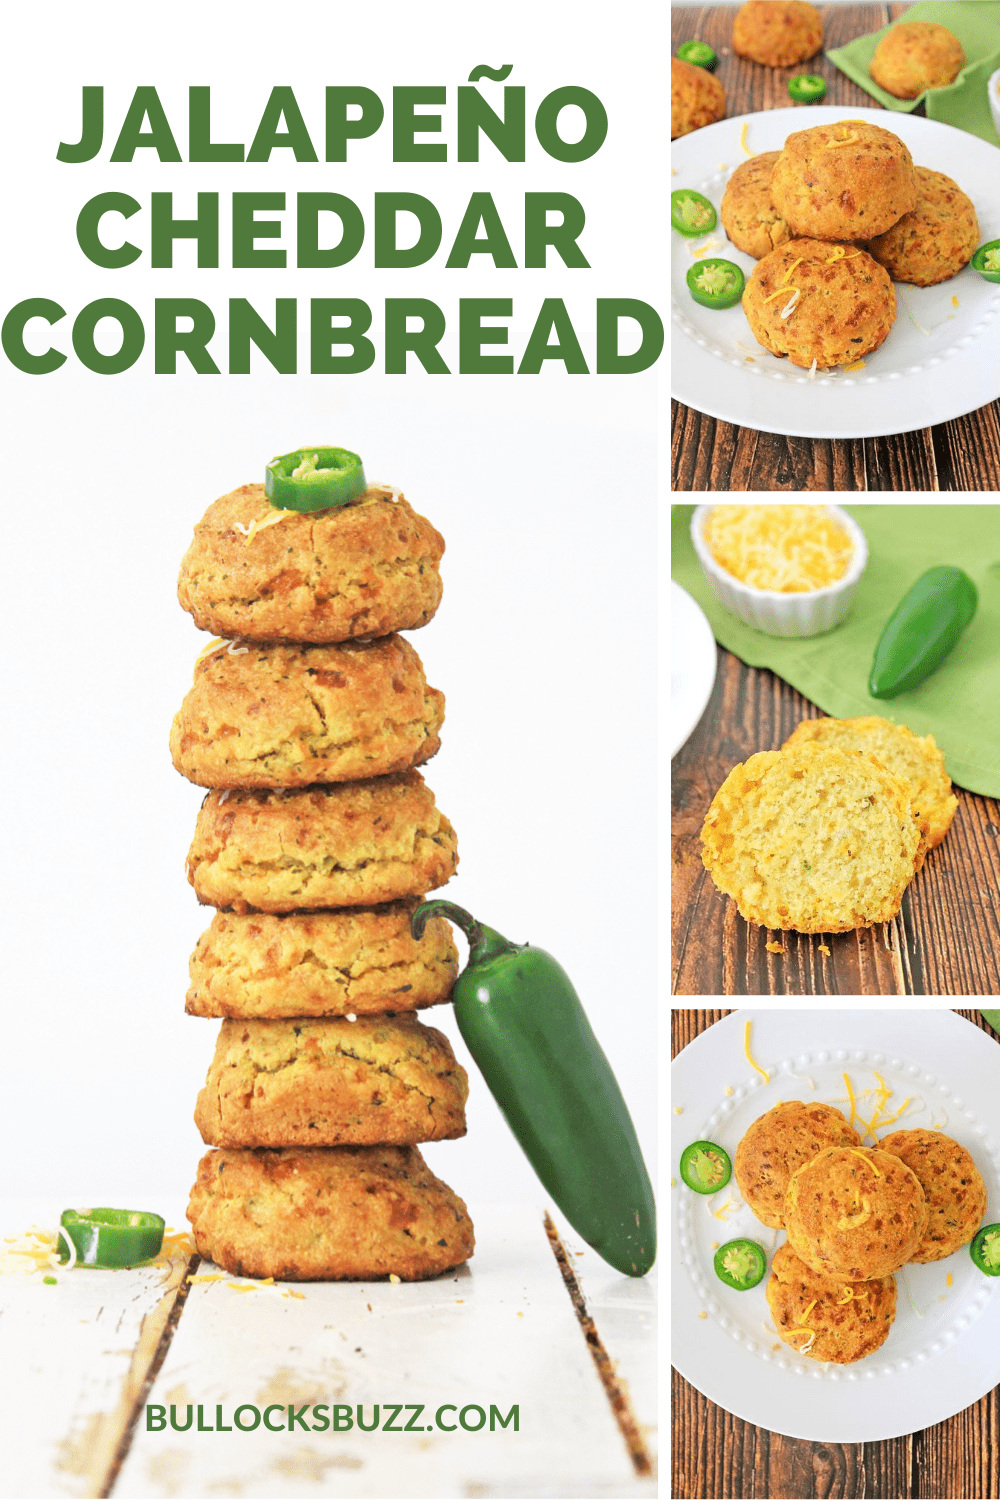 Delicious cornbread muffins are laced with shredded sharp cheddar and slivered jalapeños for a flavor combination that offers just the right amount of sweet and heat in this homemade Jalapeño Cheddar Cornbread Muffins Recipe.